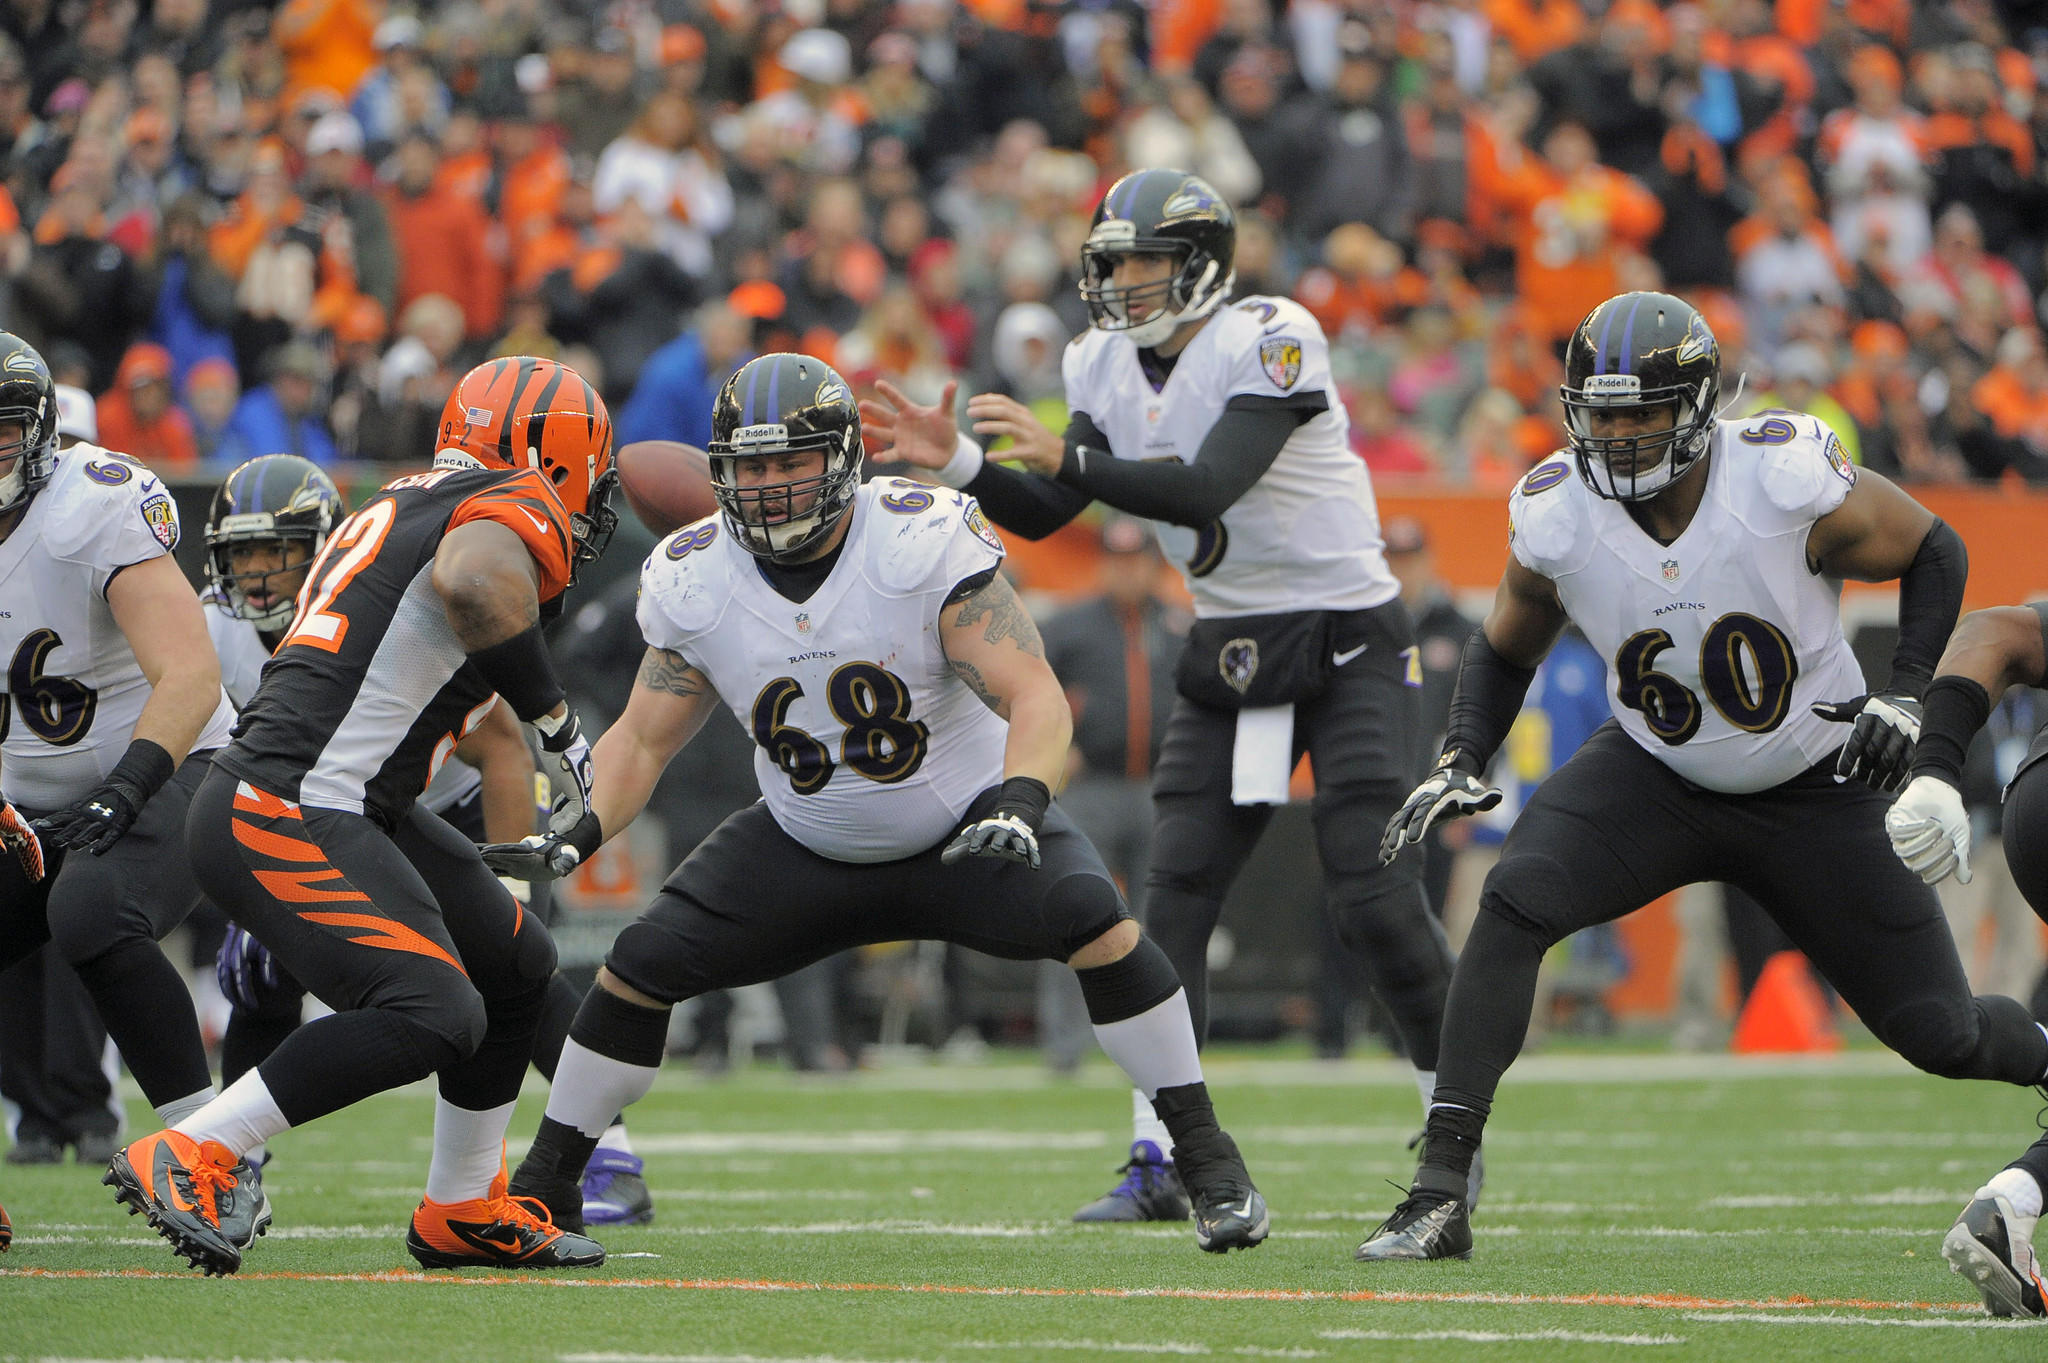 Ravens center A.Q. Shipley and offensive tackle Eugene Monroe line up as Joe Flacco takes a snap in the final game of the regular season in December.